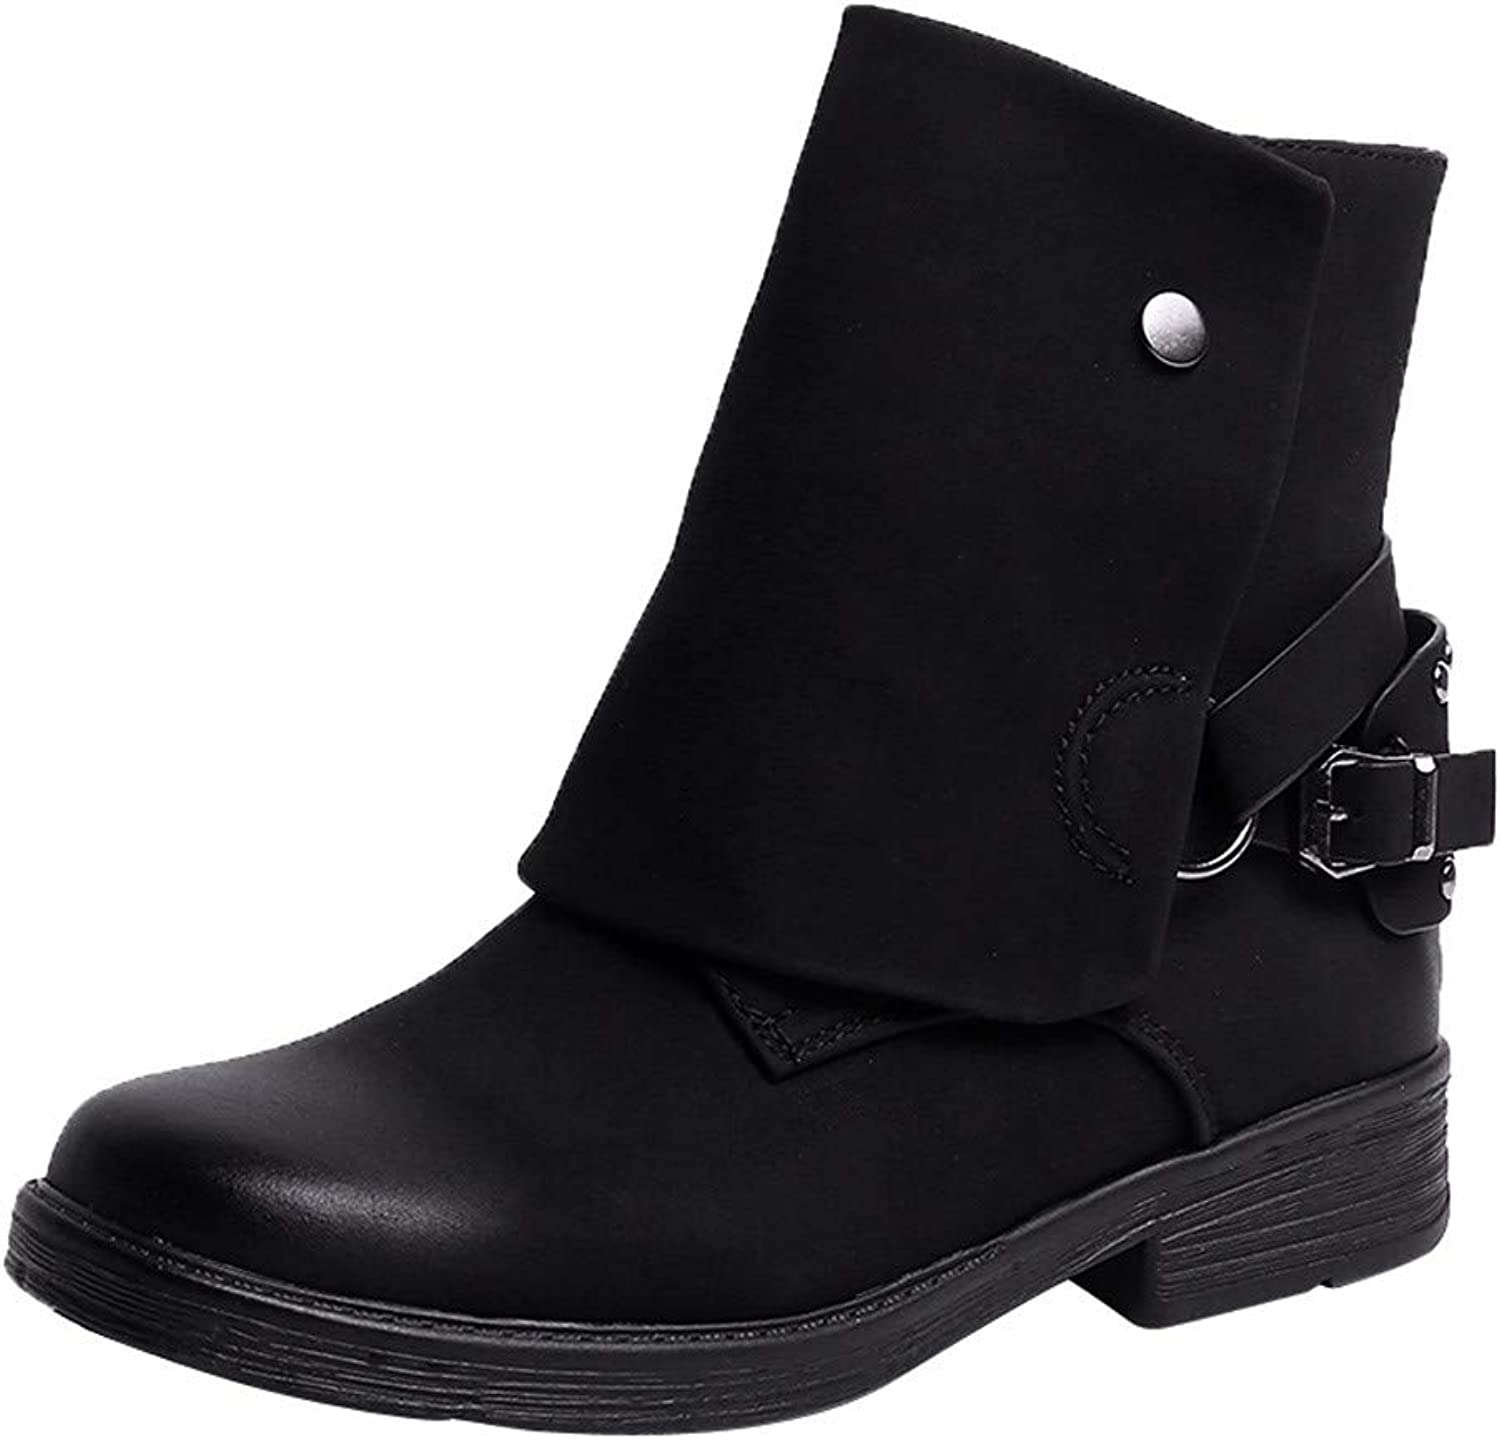 Vintage Round Toe Leather Booties, Zipper Martin Boots Square Heel